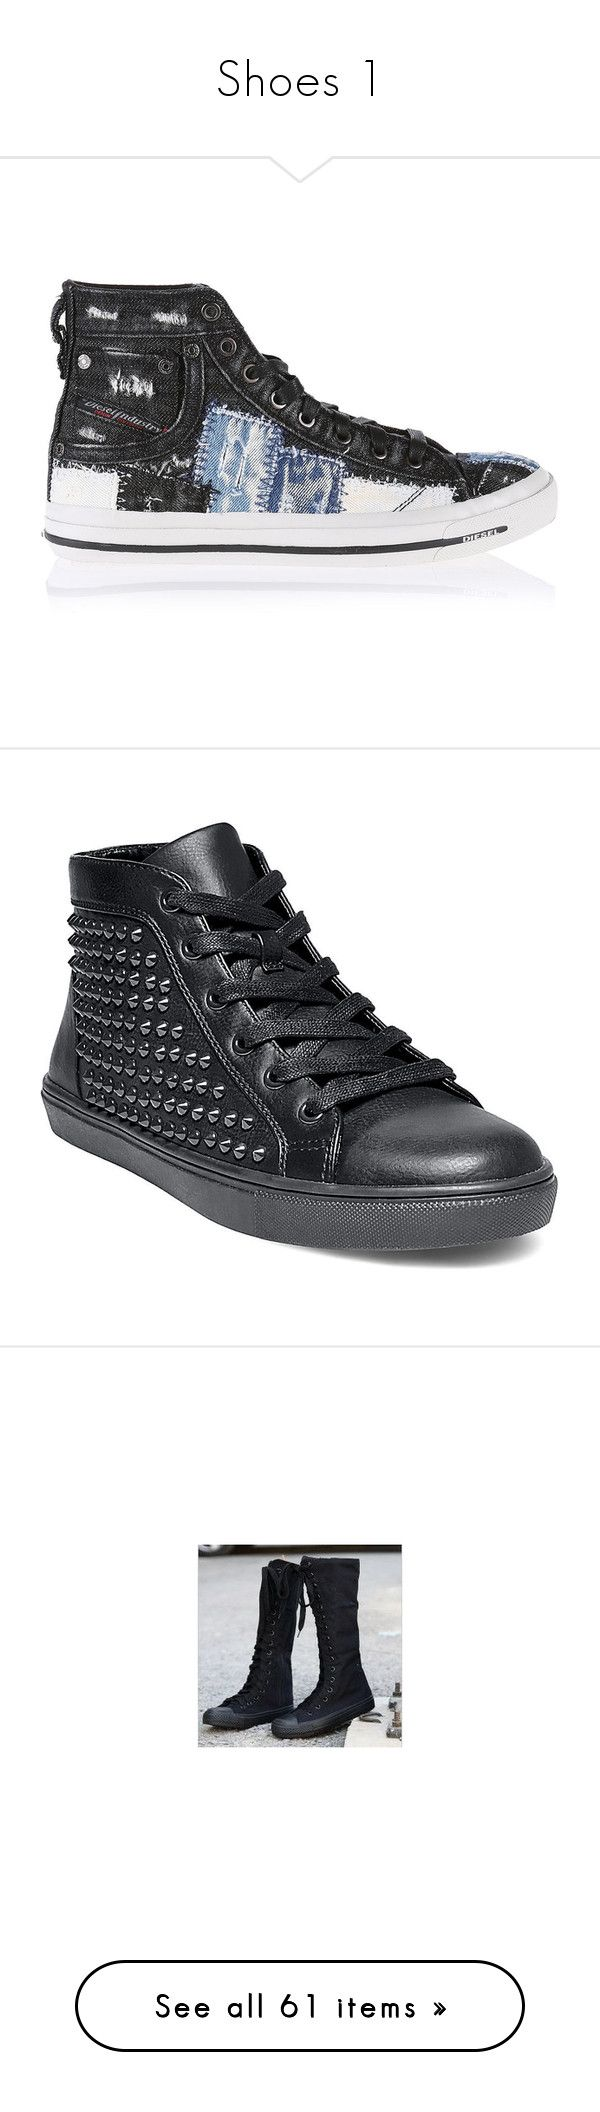 """Shoes 1"" by xxxxtherazorbladesreliefxxxx ❤ liked on Polyvore featuring shoes, sneakers, black denim, casual shoes, women, black laced shoes, diesel trainers, diesel footwear, black lace up sneakers and lace up shoes"